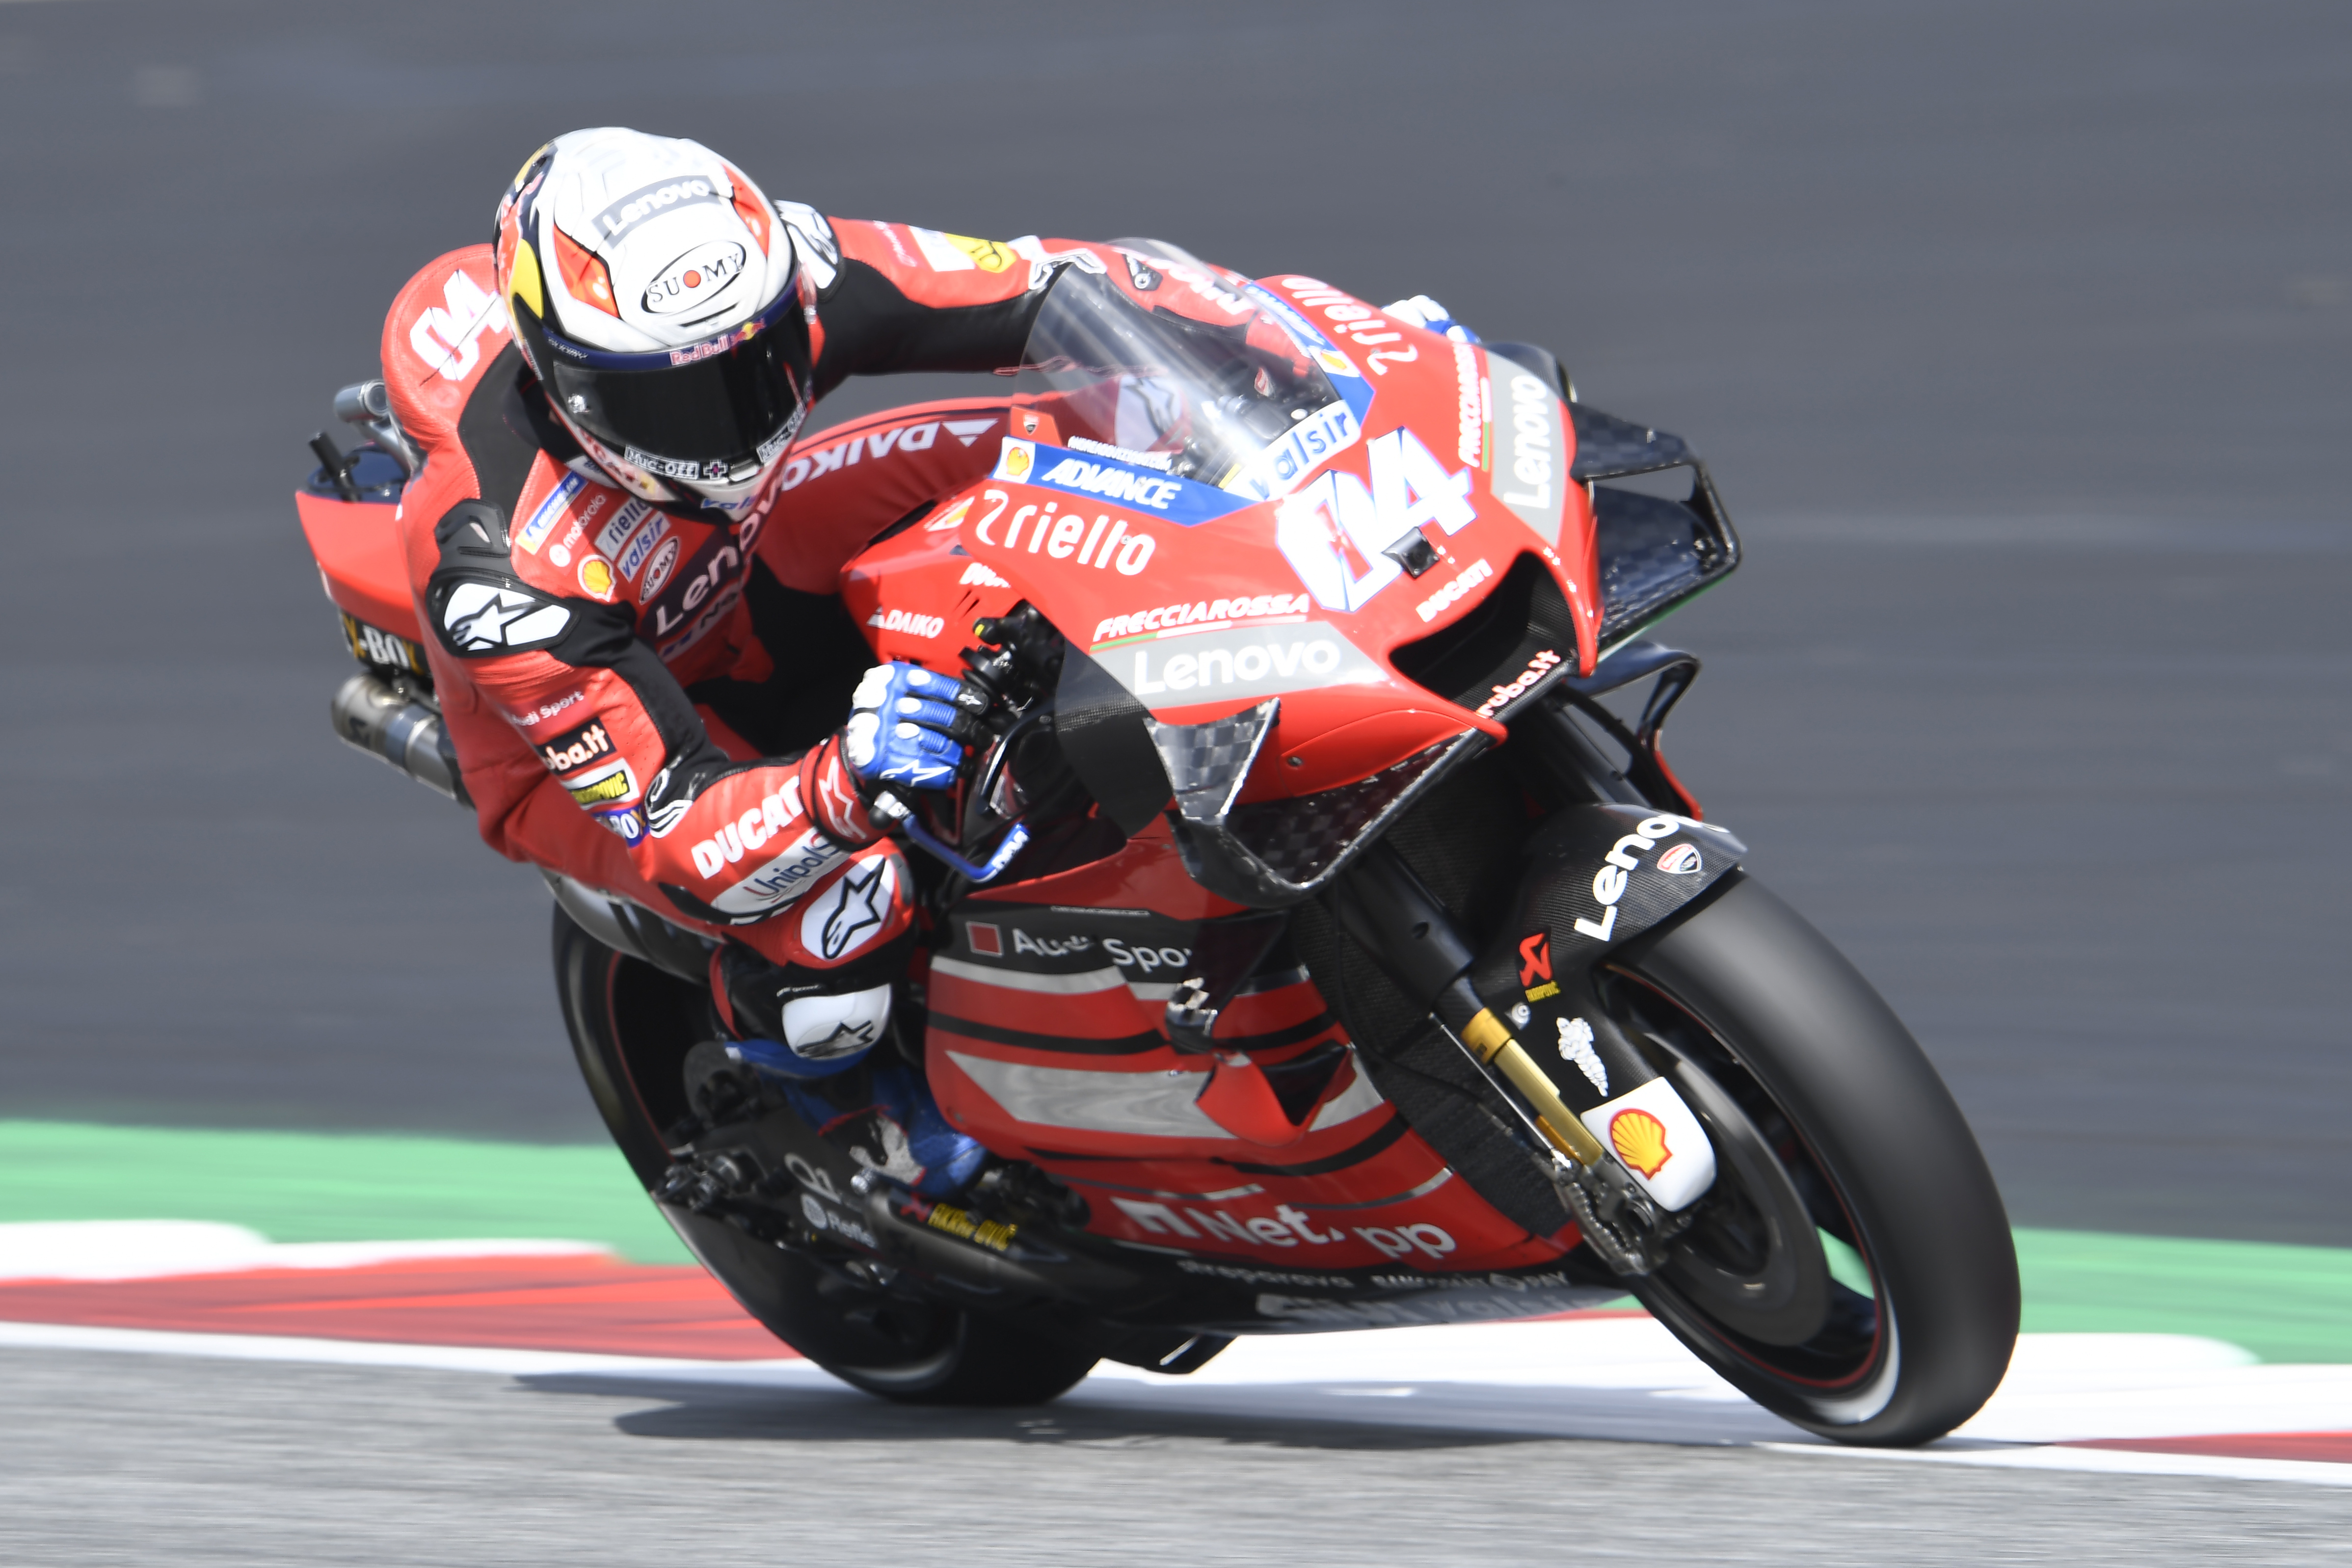 Dovizioso ends Ducati contract talks and will leave team - The Race